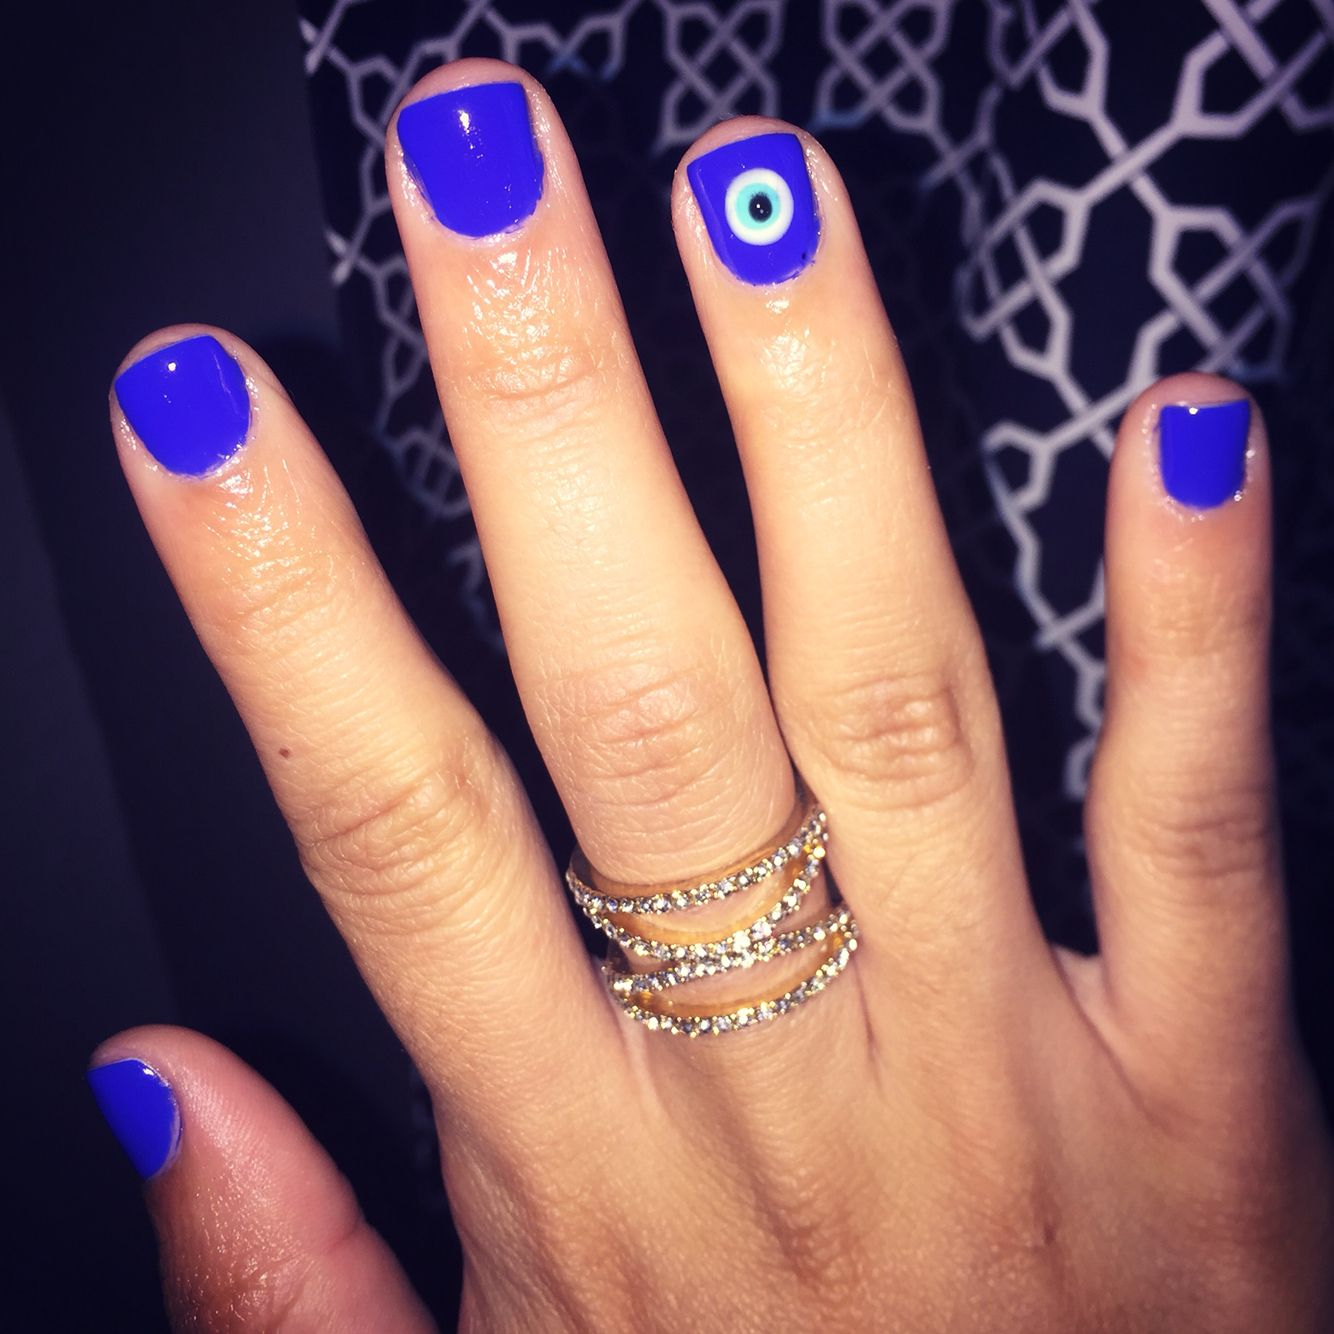 Evil eye nails | Beauty | Pinterest | Evil eye nails, Evil eye and Eye